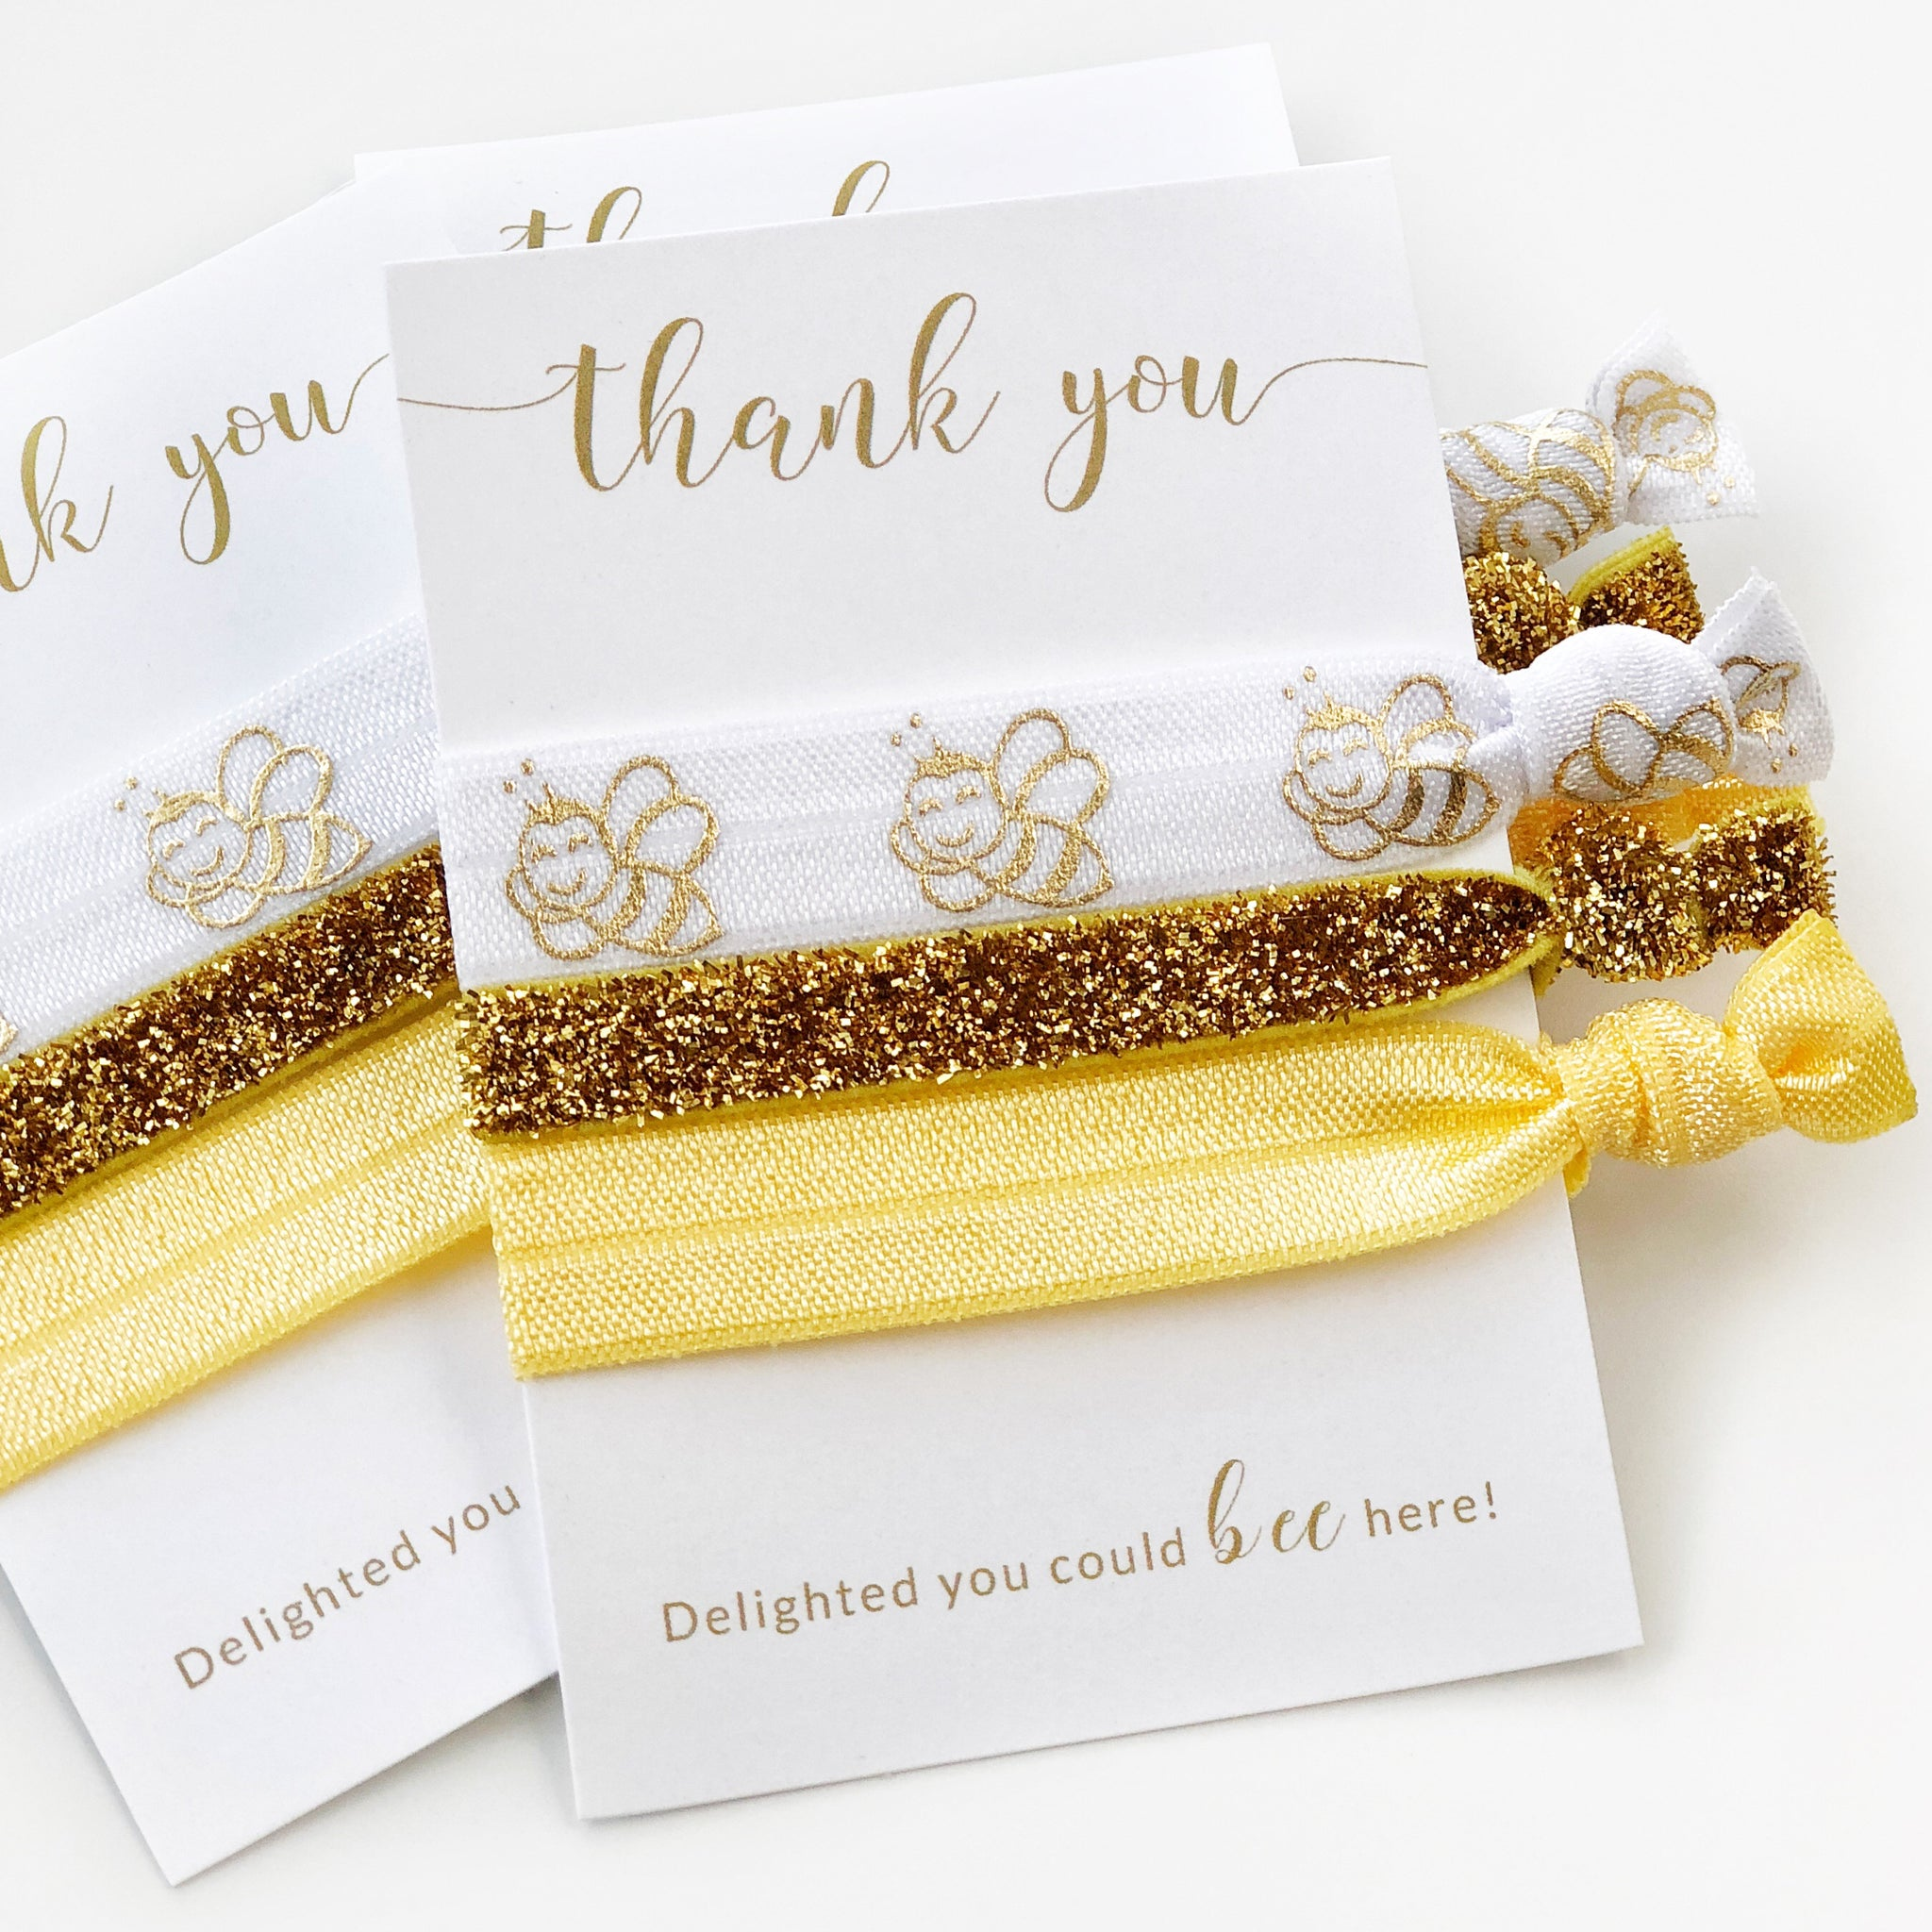 Bee Party Favors - Hair Ties - @PlumPolkaDot